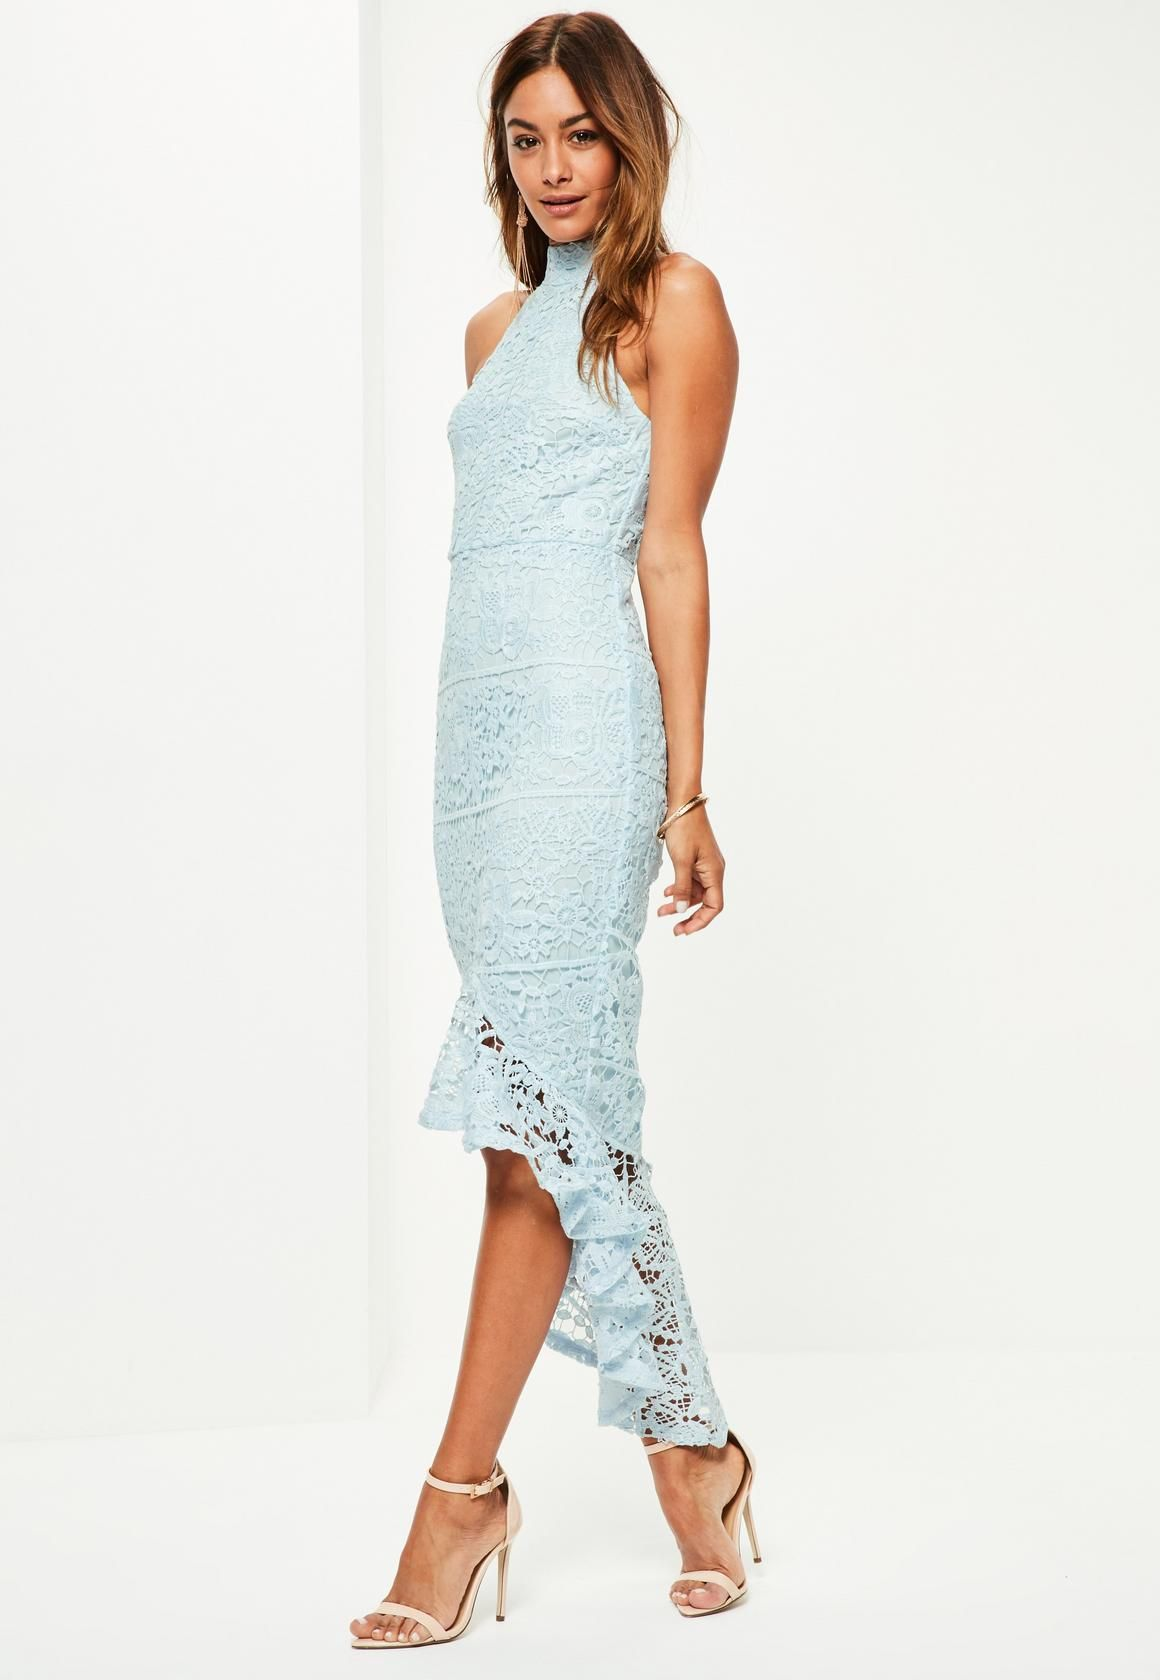 Missguided - Blue Lace High Neck Fishtail Midi Dress